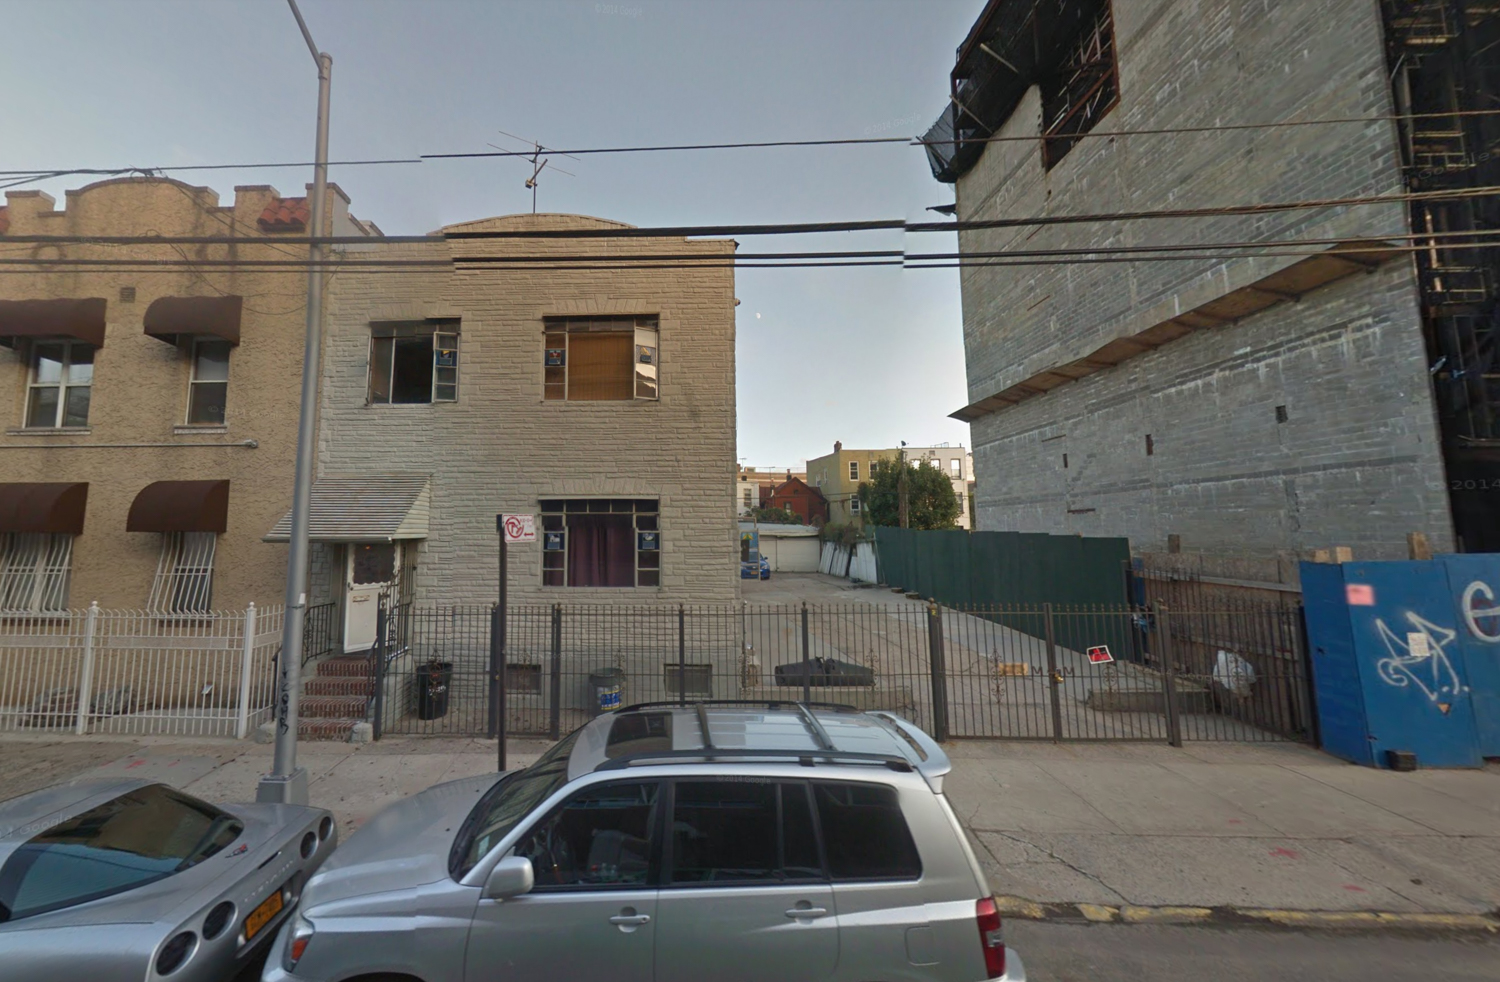 39-25 27th Street, via Google Maps